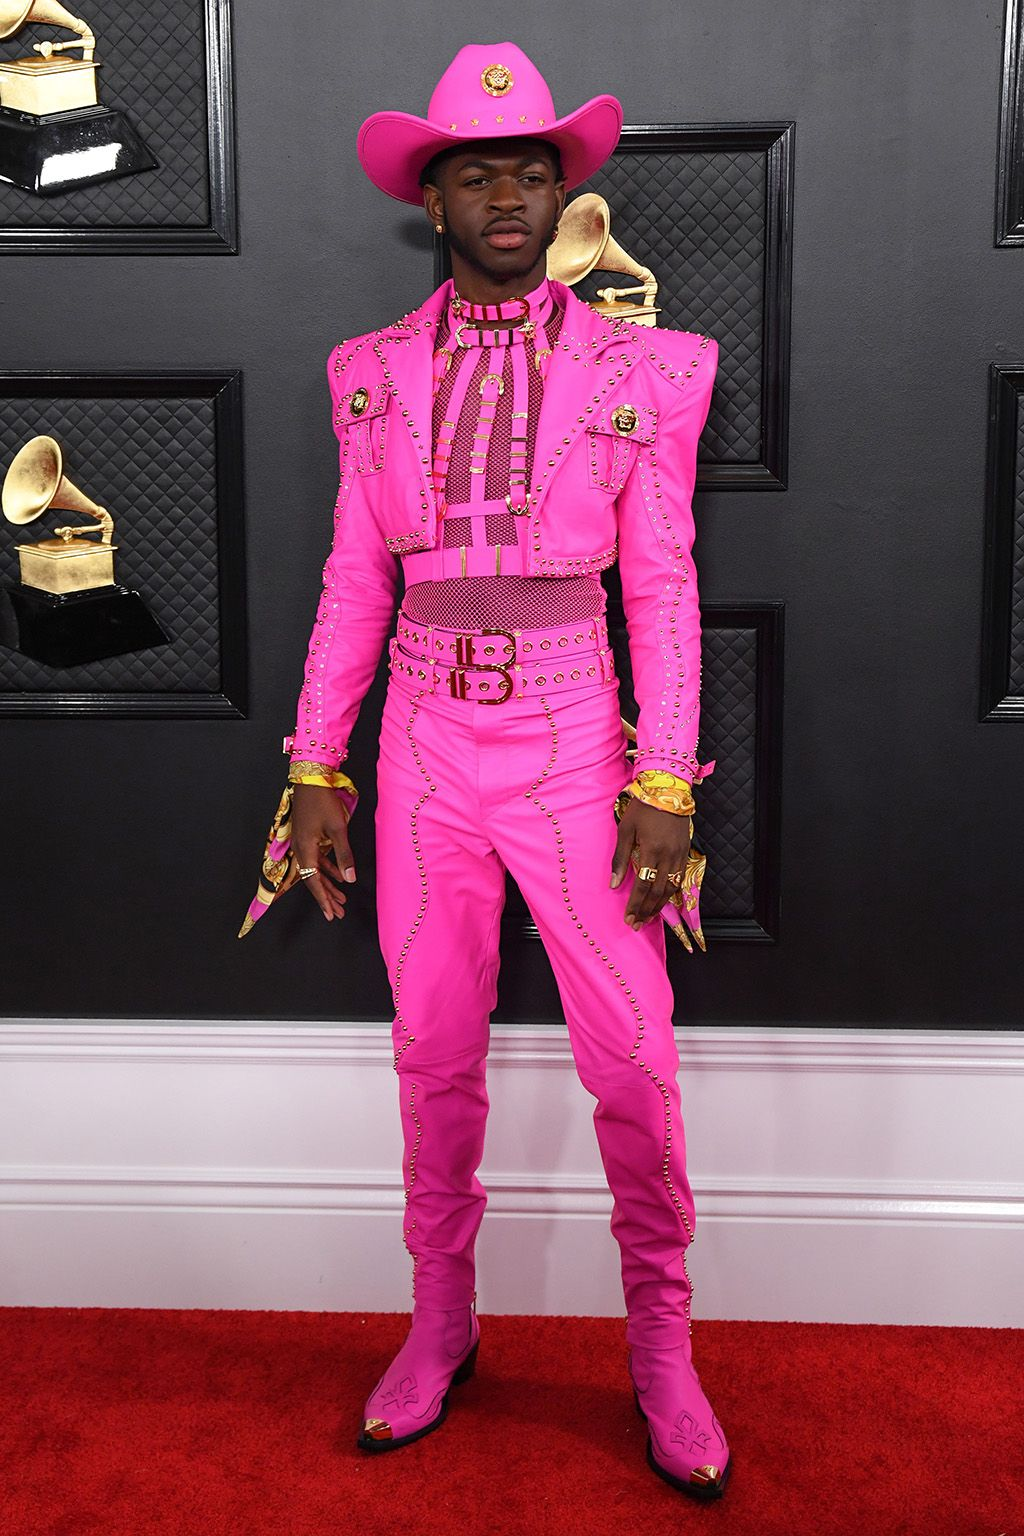 Lil Nas X and Men in Pink at the Grammy Awards Footwear